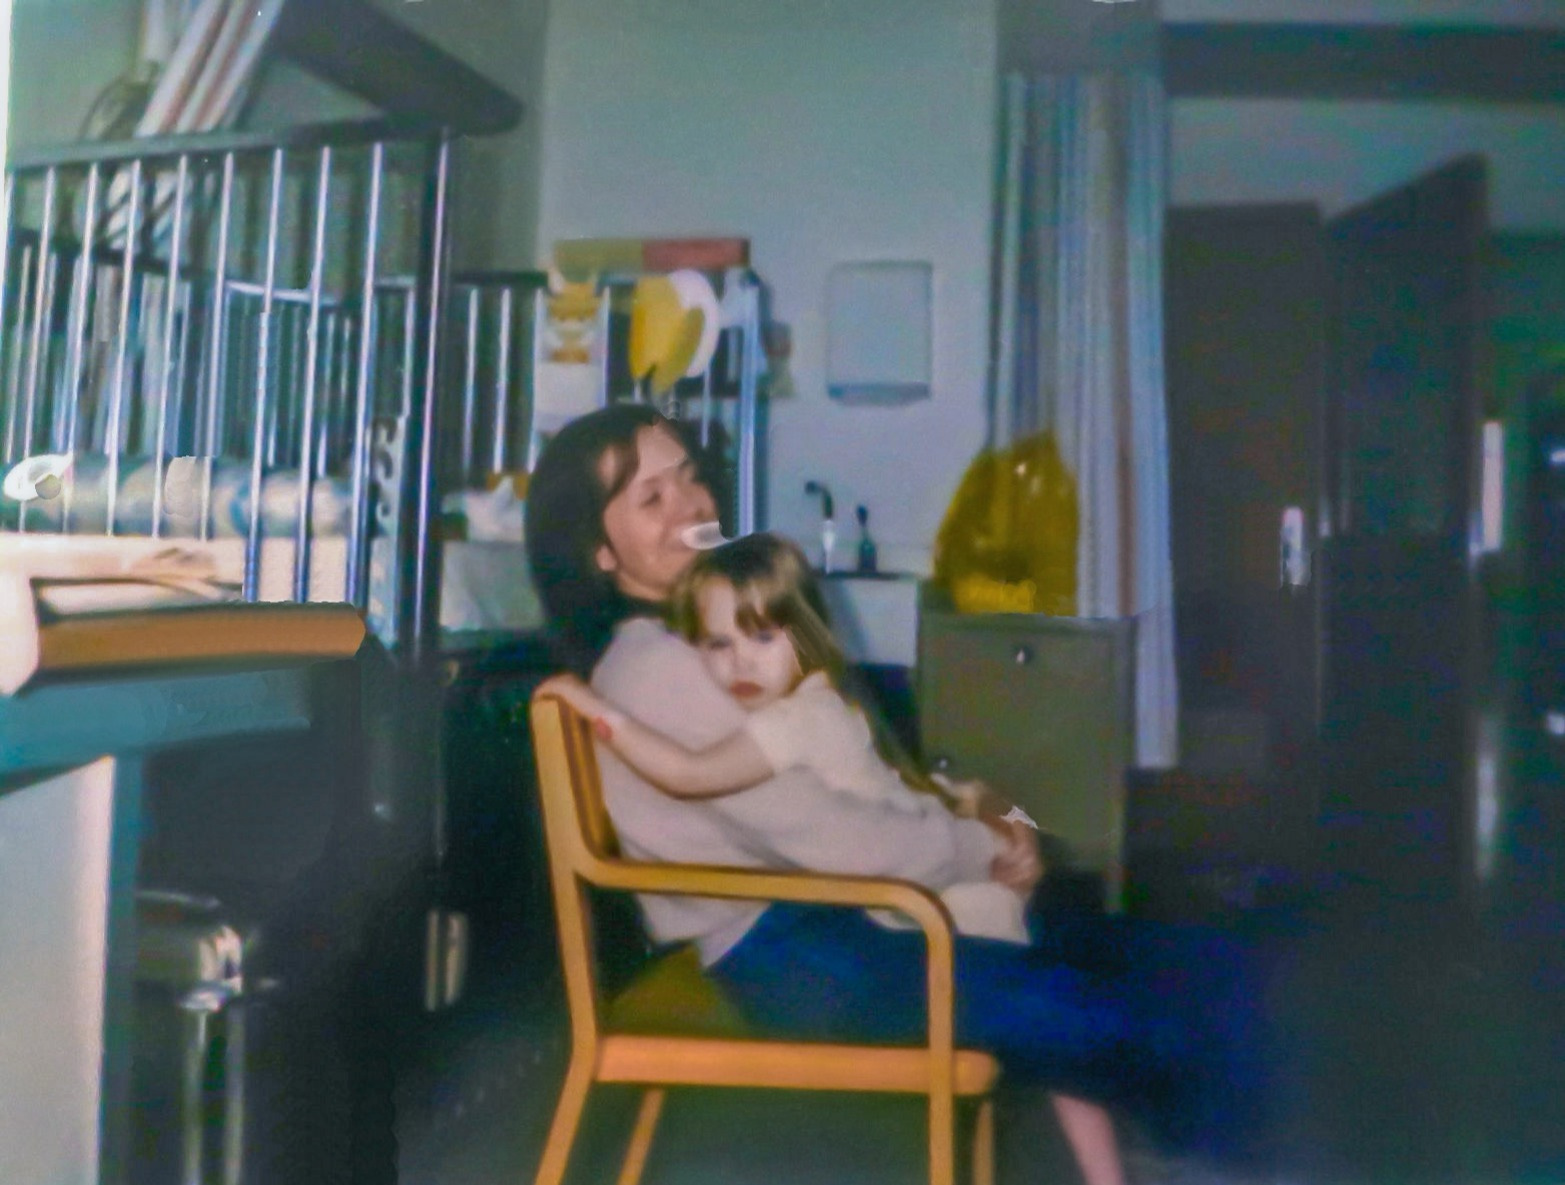 Laying on my mom's lap while she sits in a chair with her arms around me in the hospital. My hospital bed behind us. I was about age 4